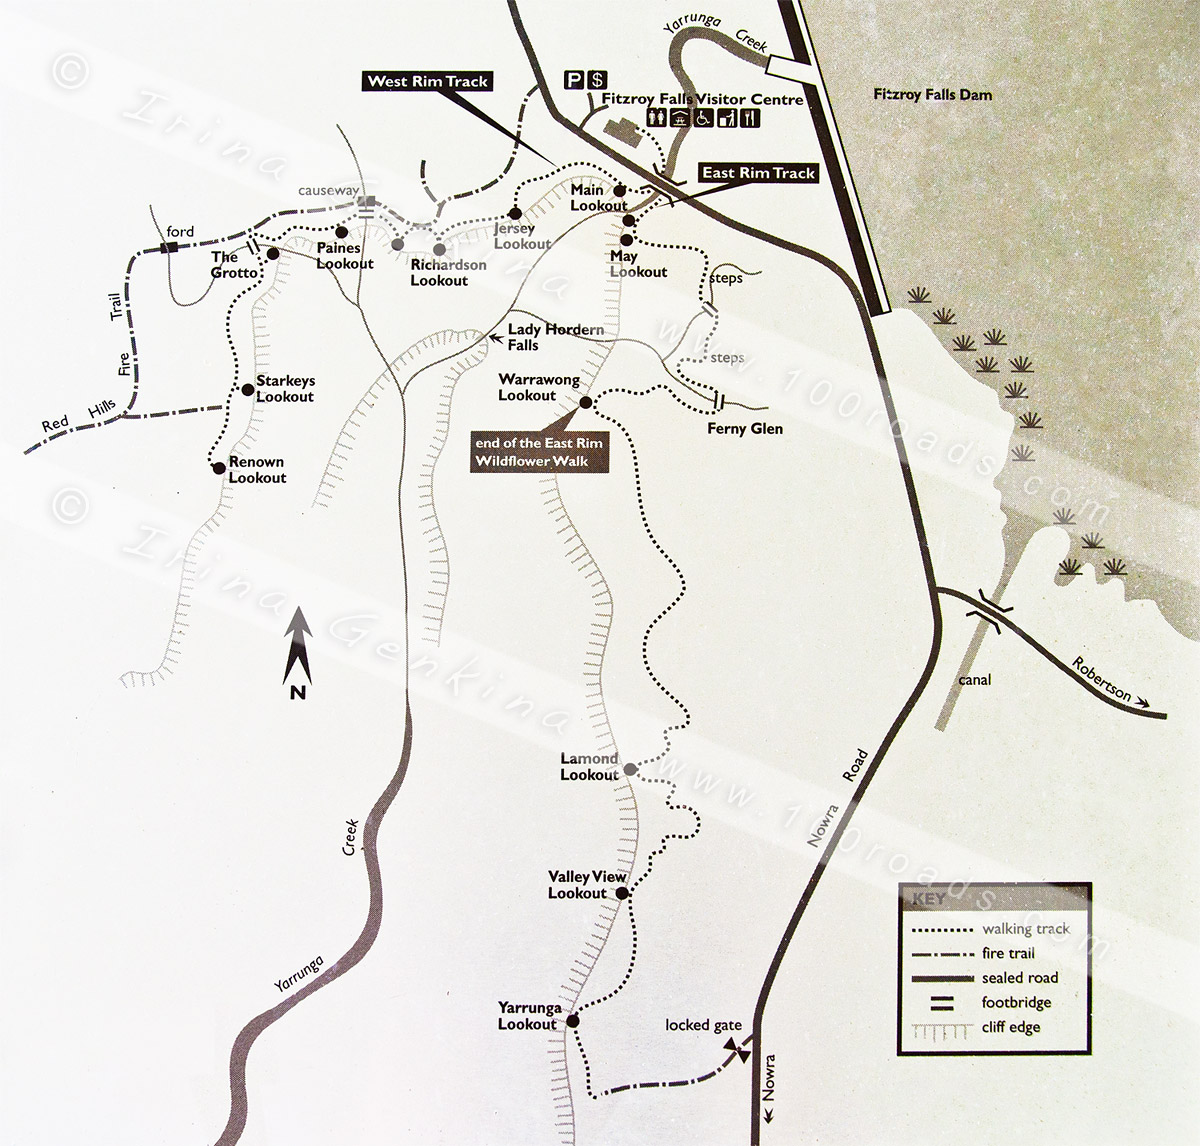 fitzroy_falls_area_map